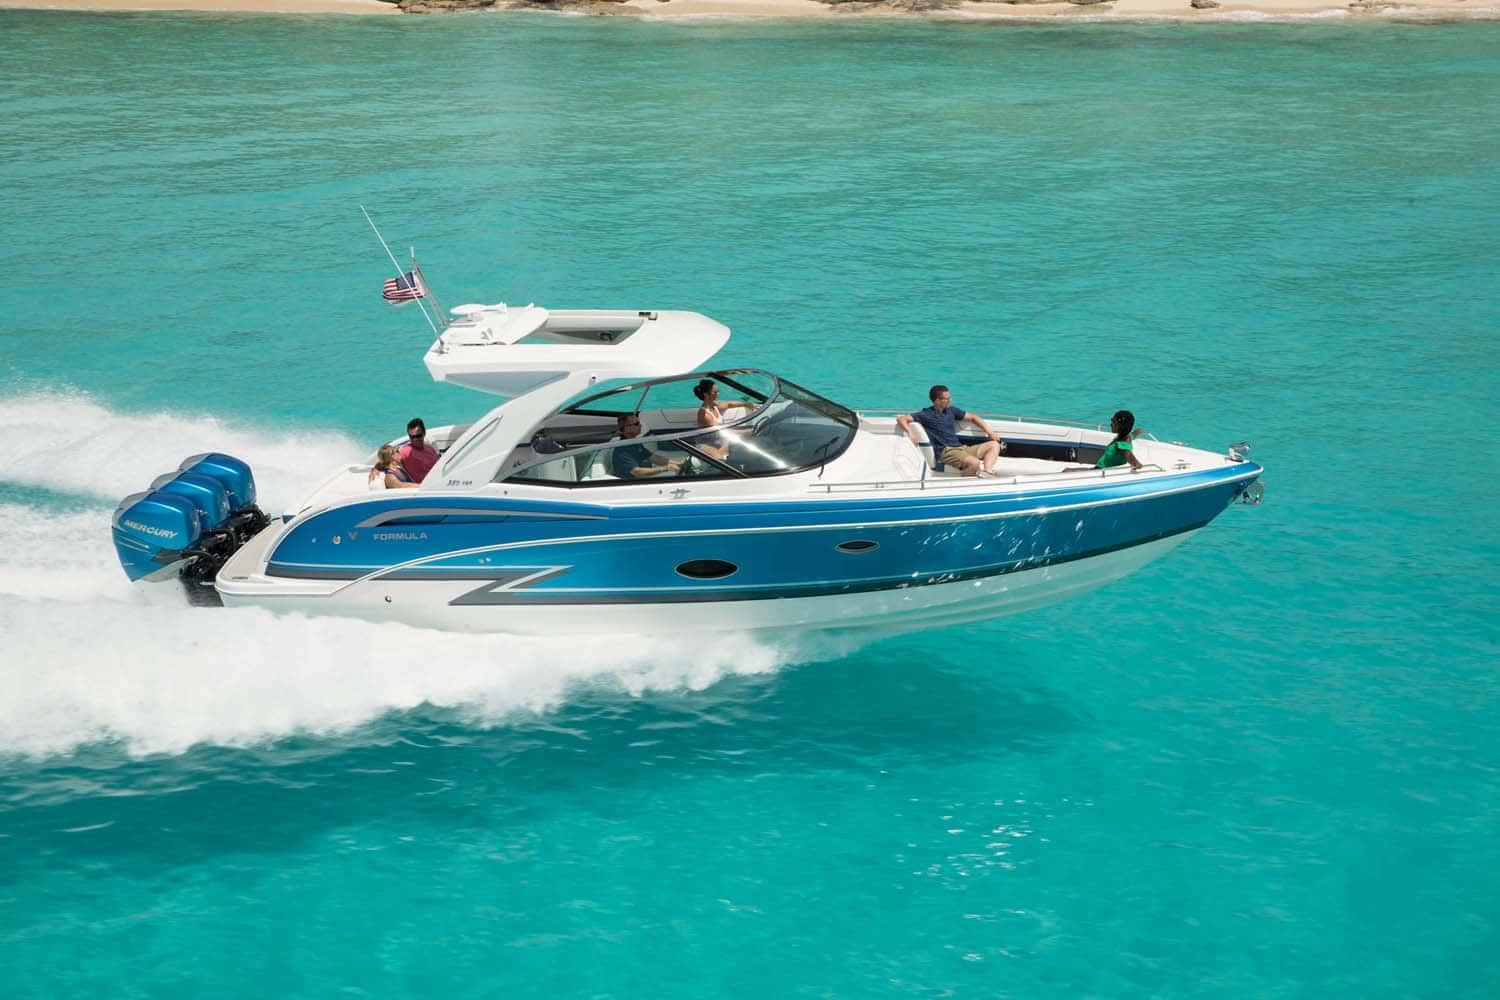 An image of the 350 Crossover Bowrider boat (known as the 350 CBR) on the ocean for better understanding of the model visually. Shows a white boat with teal markings and three motors. 6 people are on the boat relaxing as it cruises.